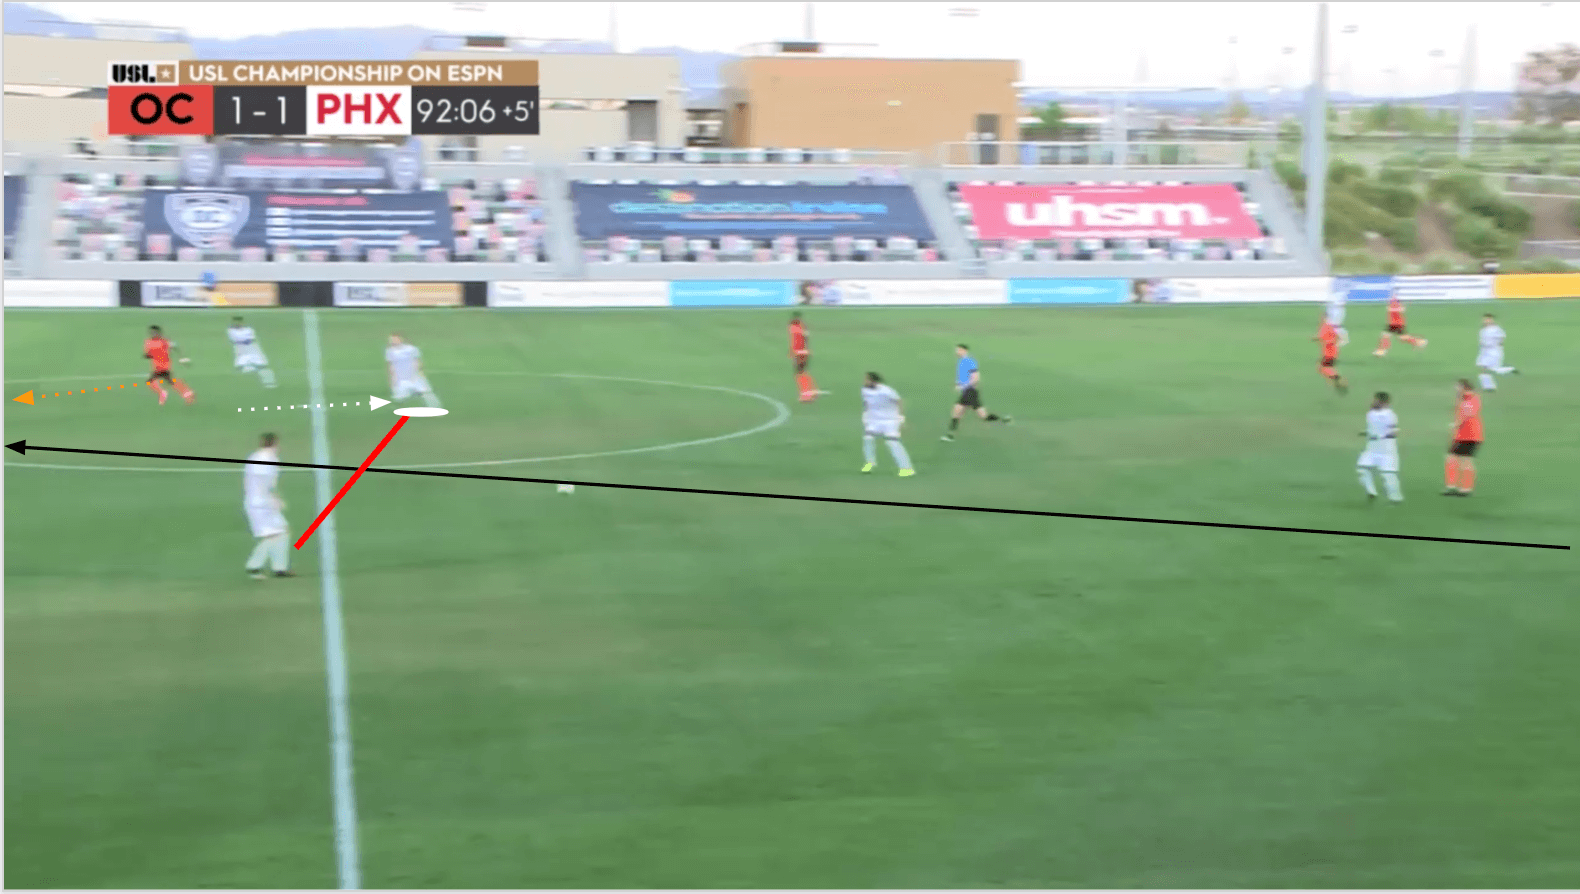 USL Championship 2019/20: Orange County SC vs Phoenix Rising - tactical analysis tactics